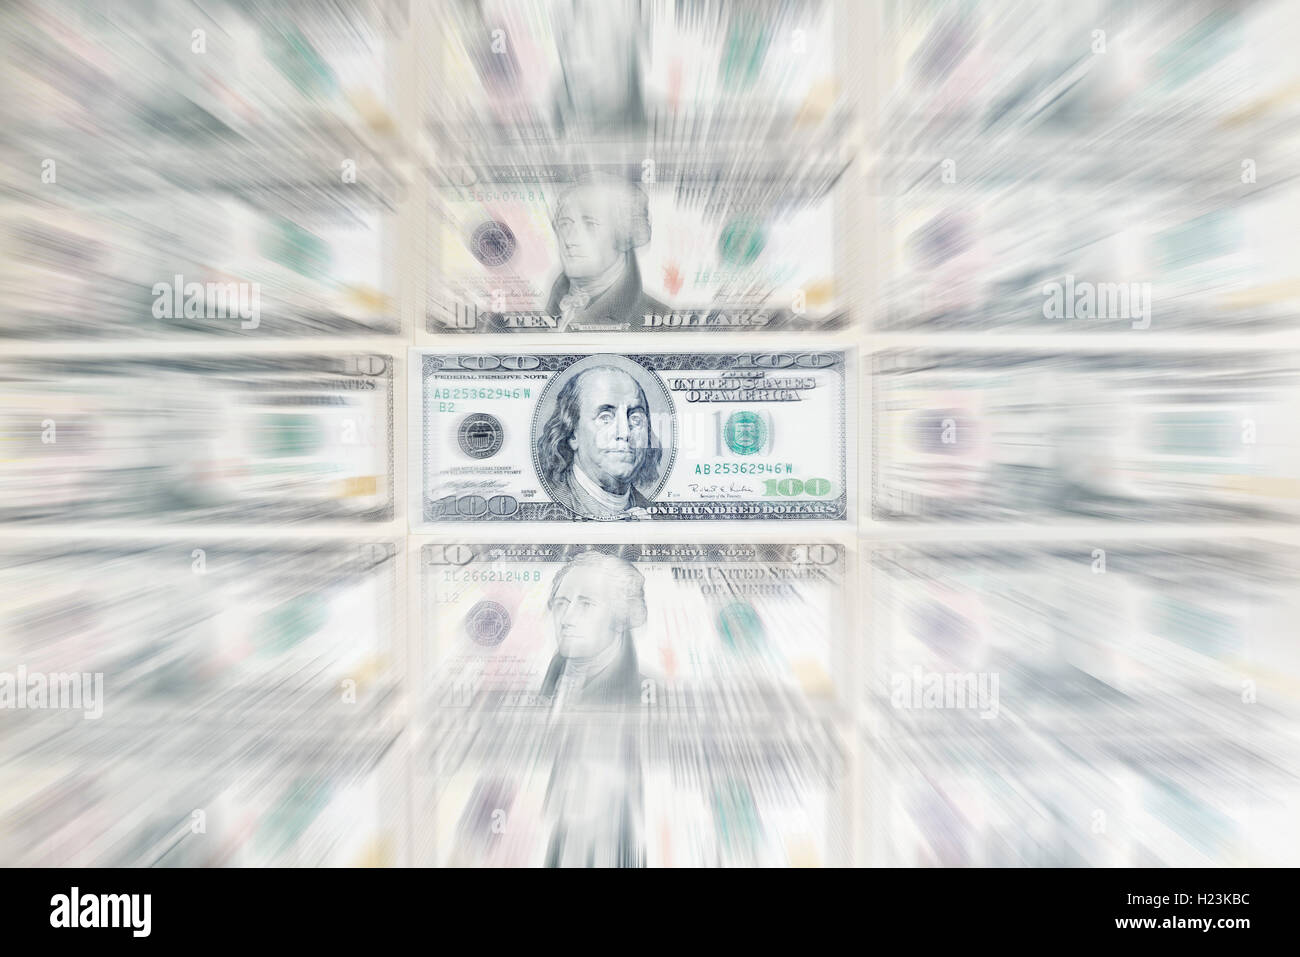 US dollar bills, 100 dollar bill, zoom effect - Stock Image